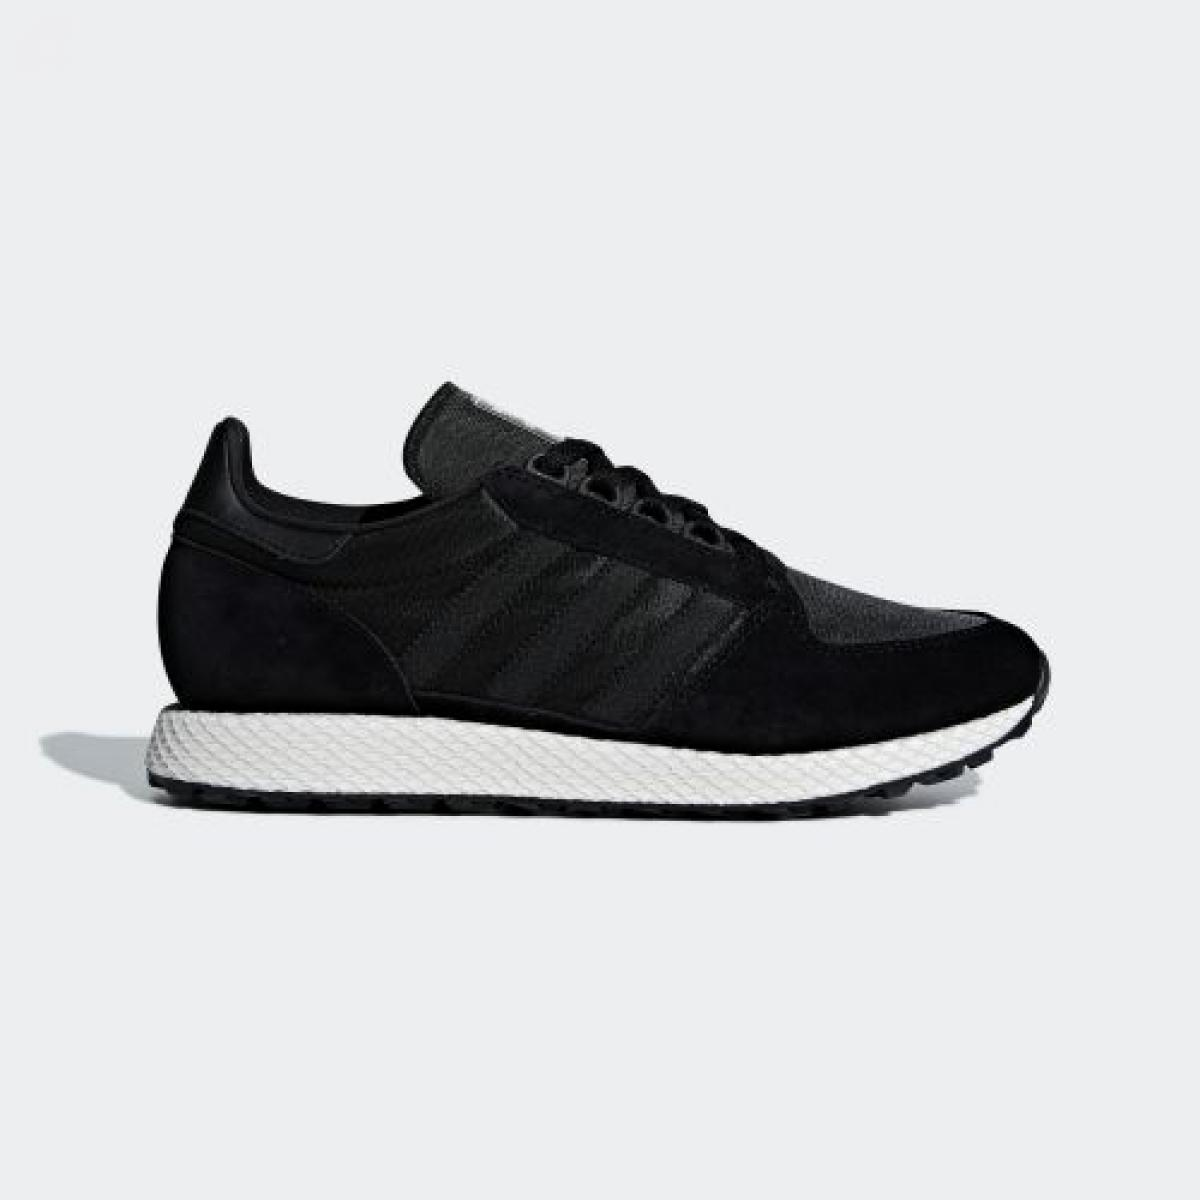 adidas  Adidas adidas Forest Grove Lady s men B37960 shoes nature leather  synthetic fiber rubber bottom  90e114fc3